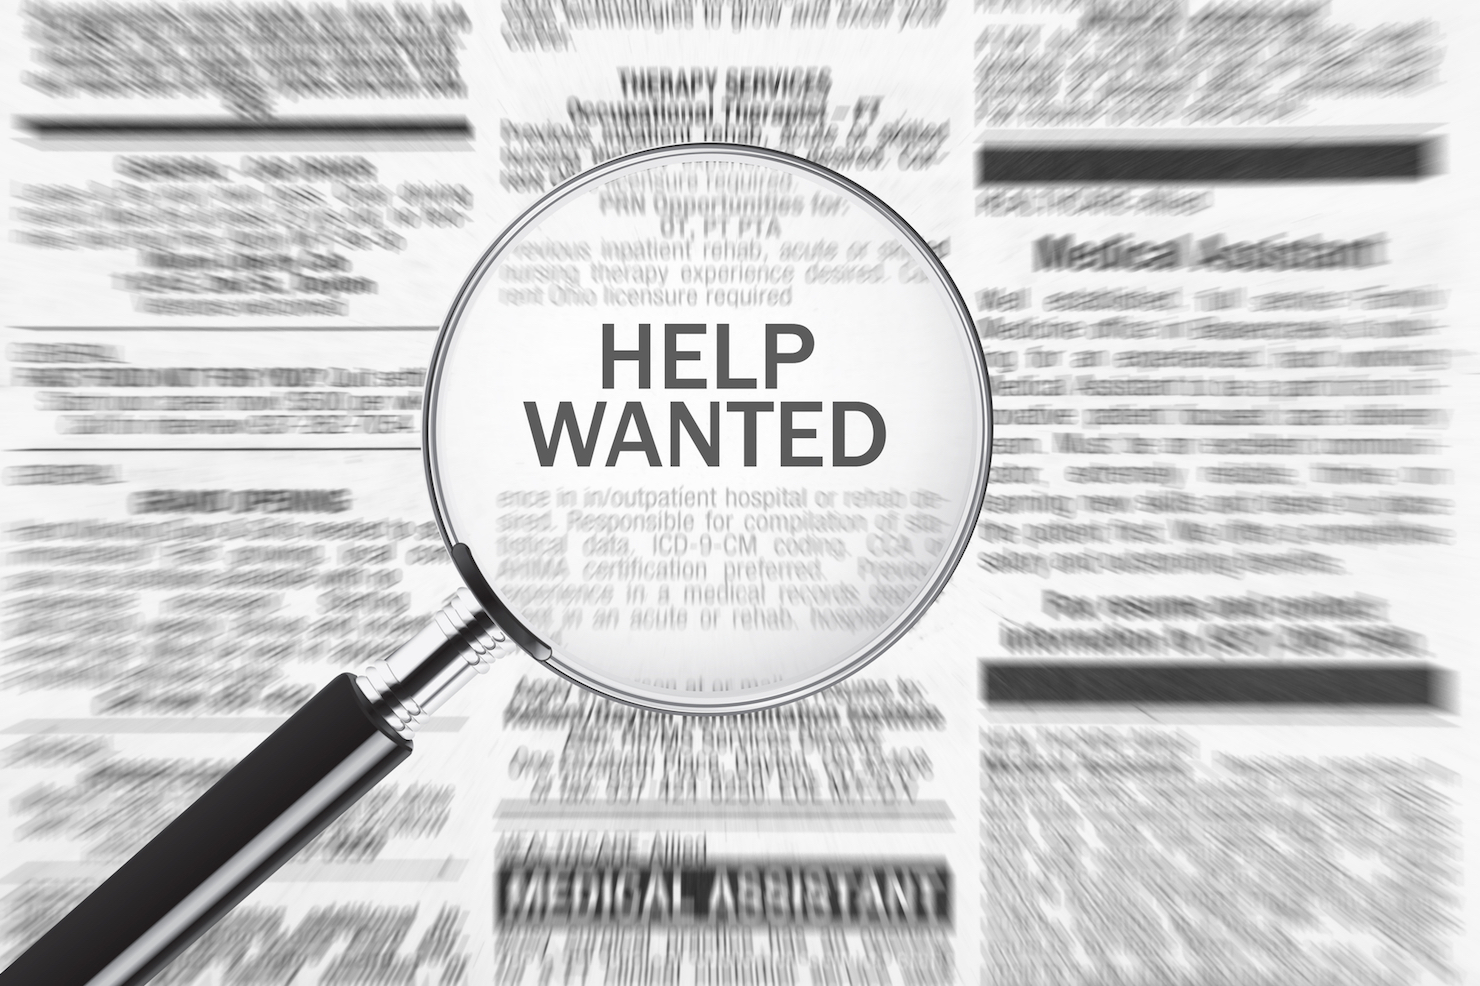 Help wanted, jobs stock image